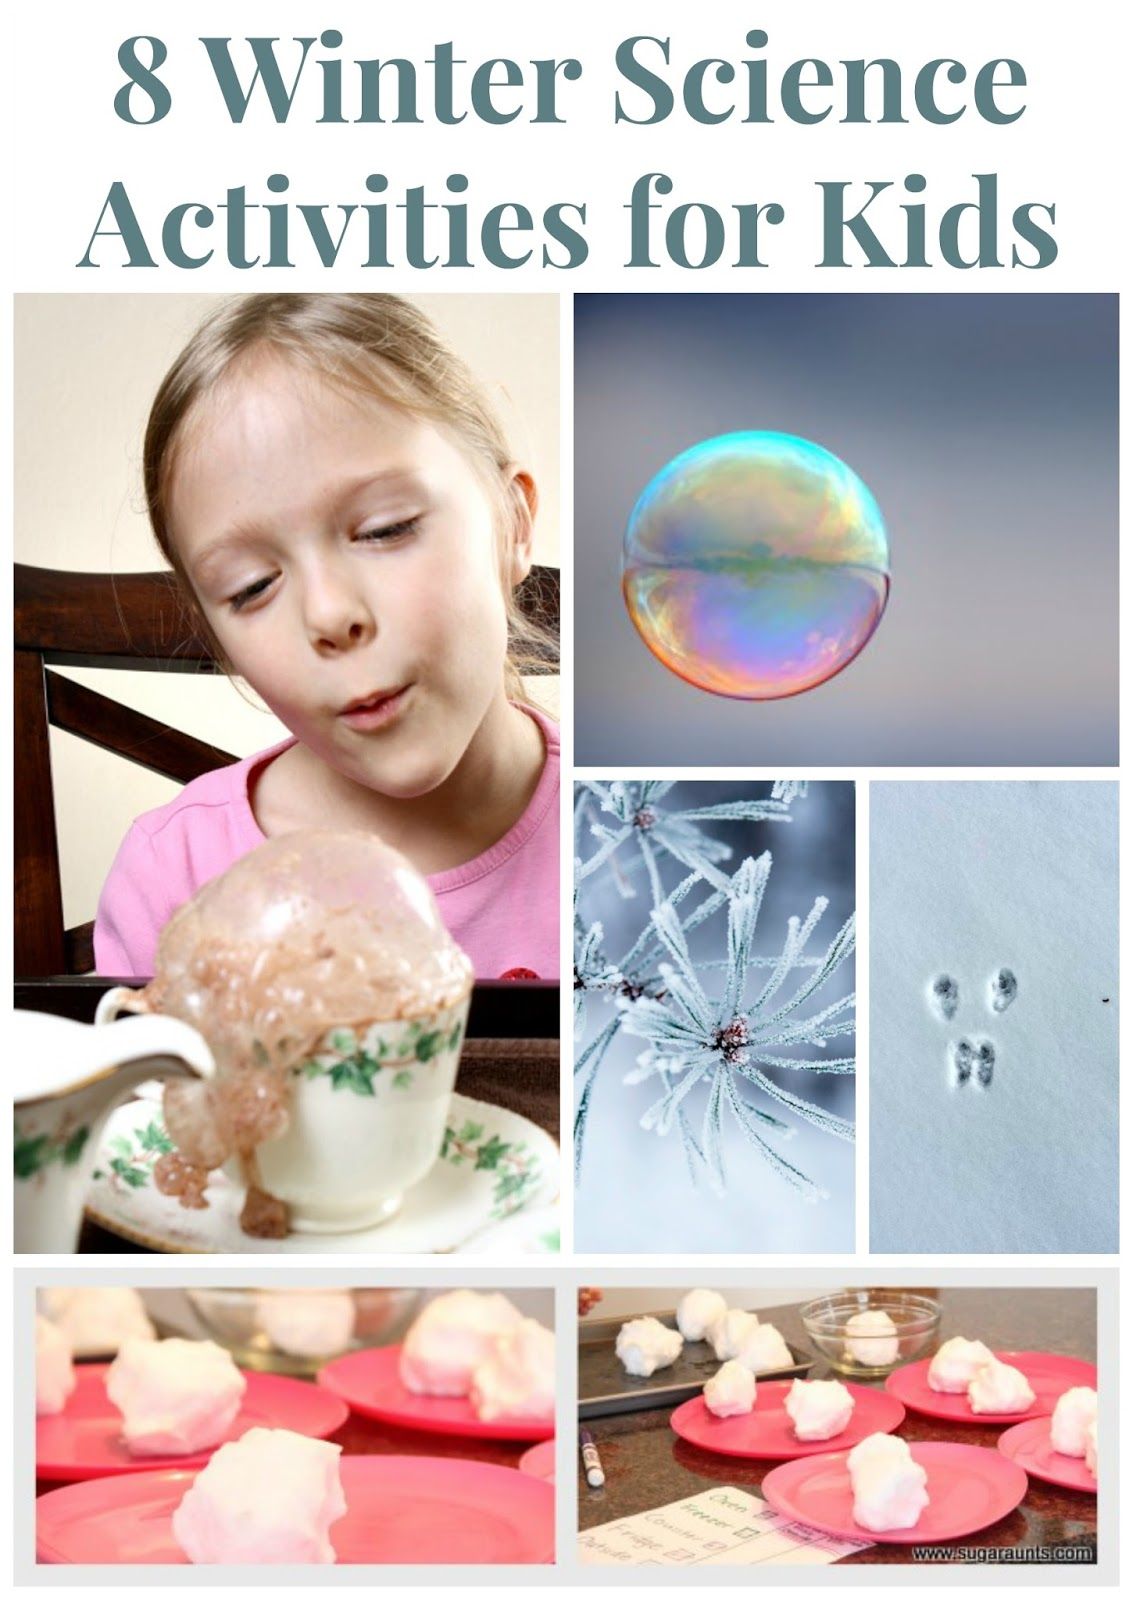 8 winter science activities for kids